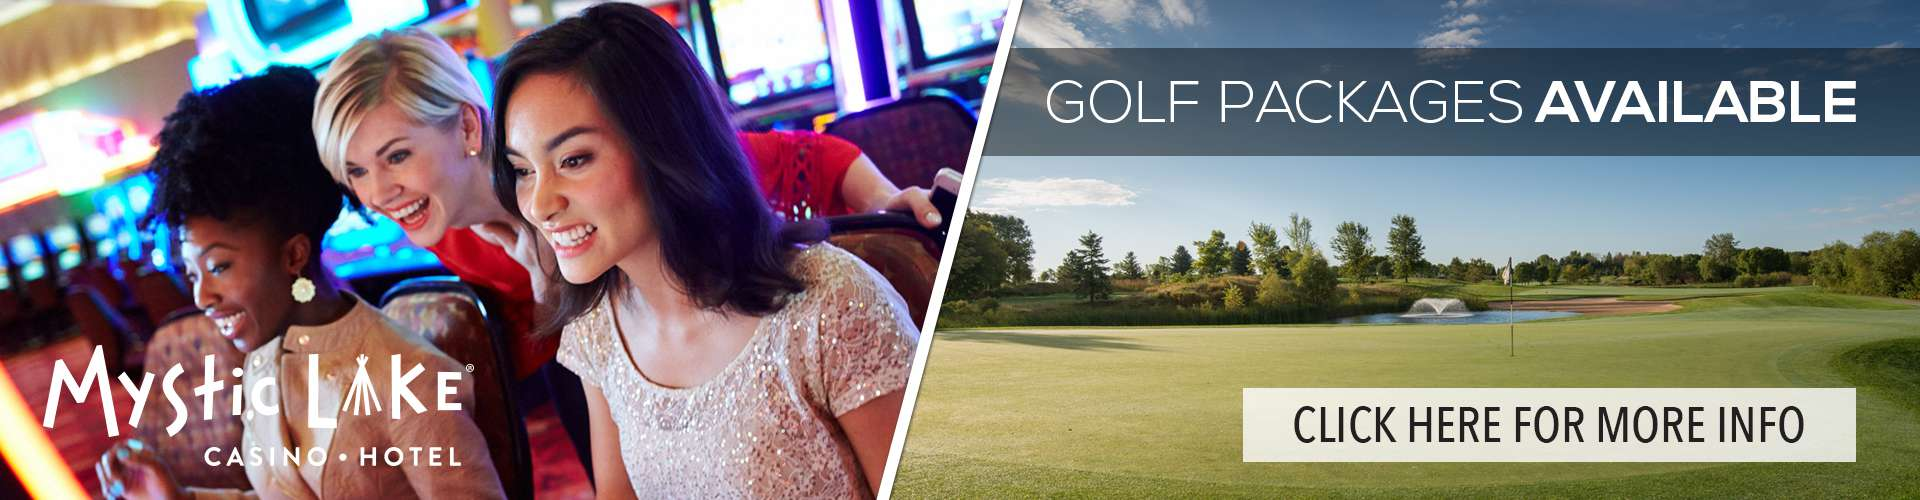 Mystic Lake Casino Hotel Golf Packages Available